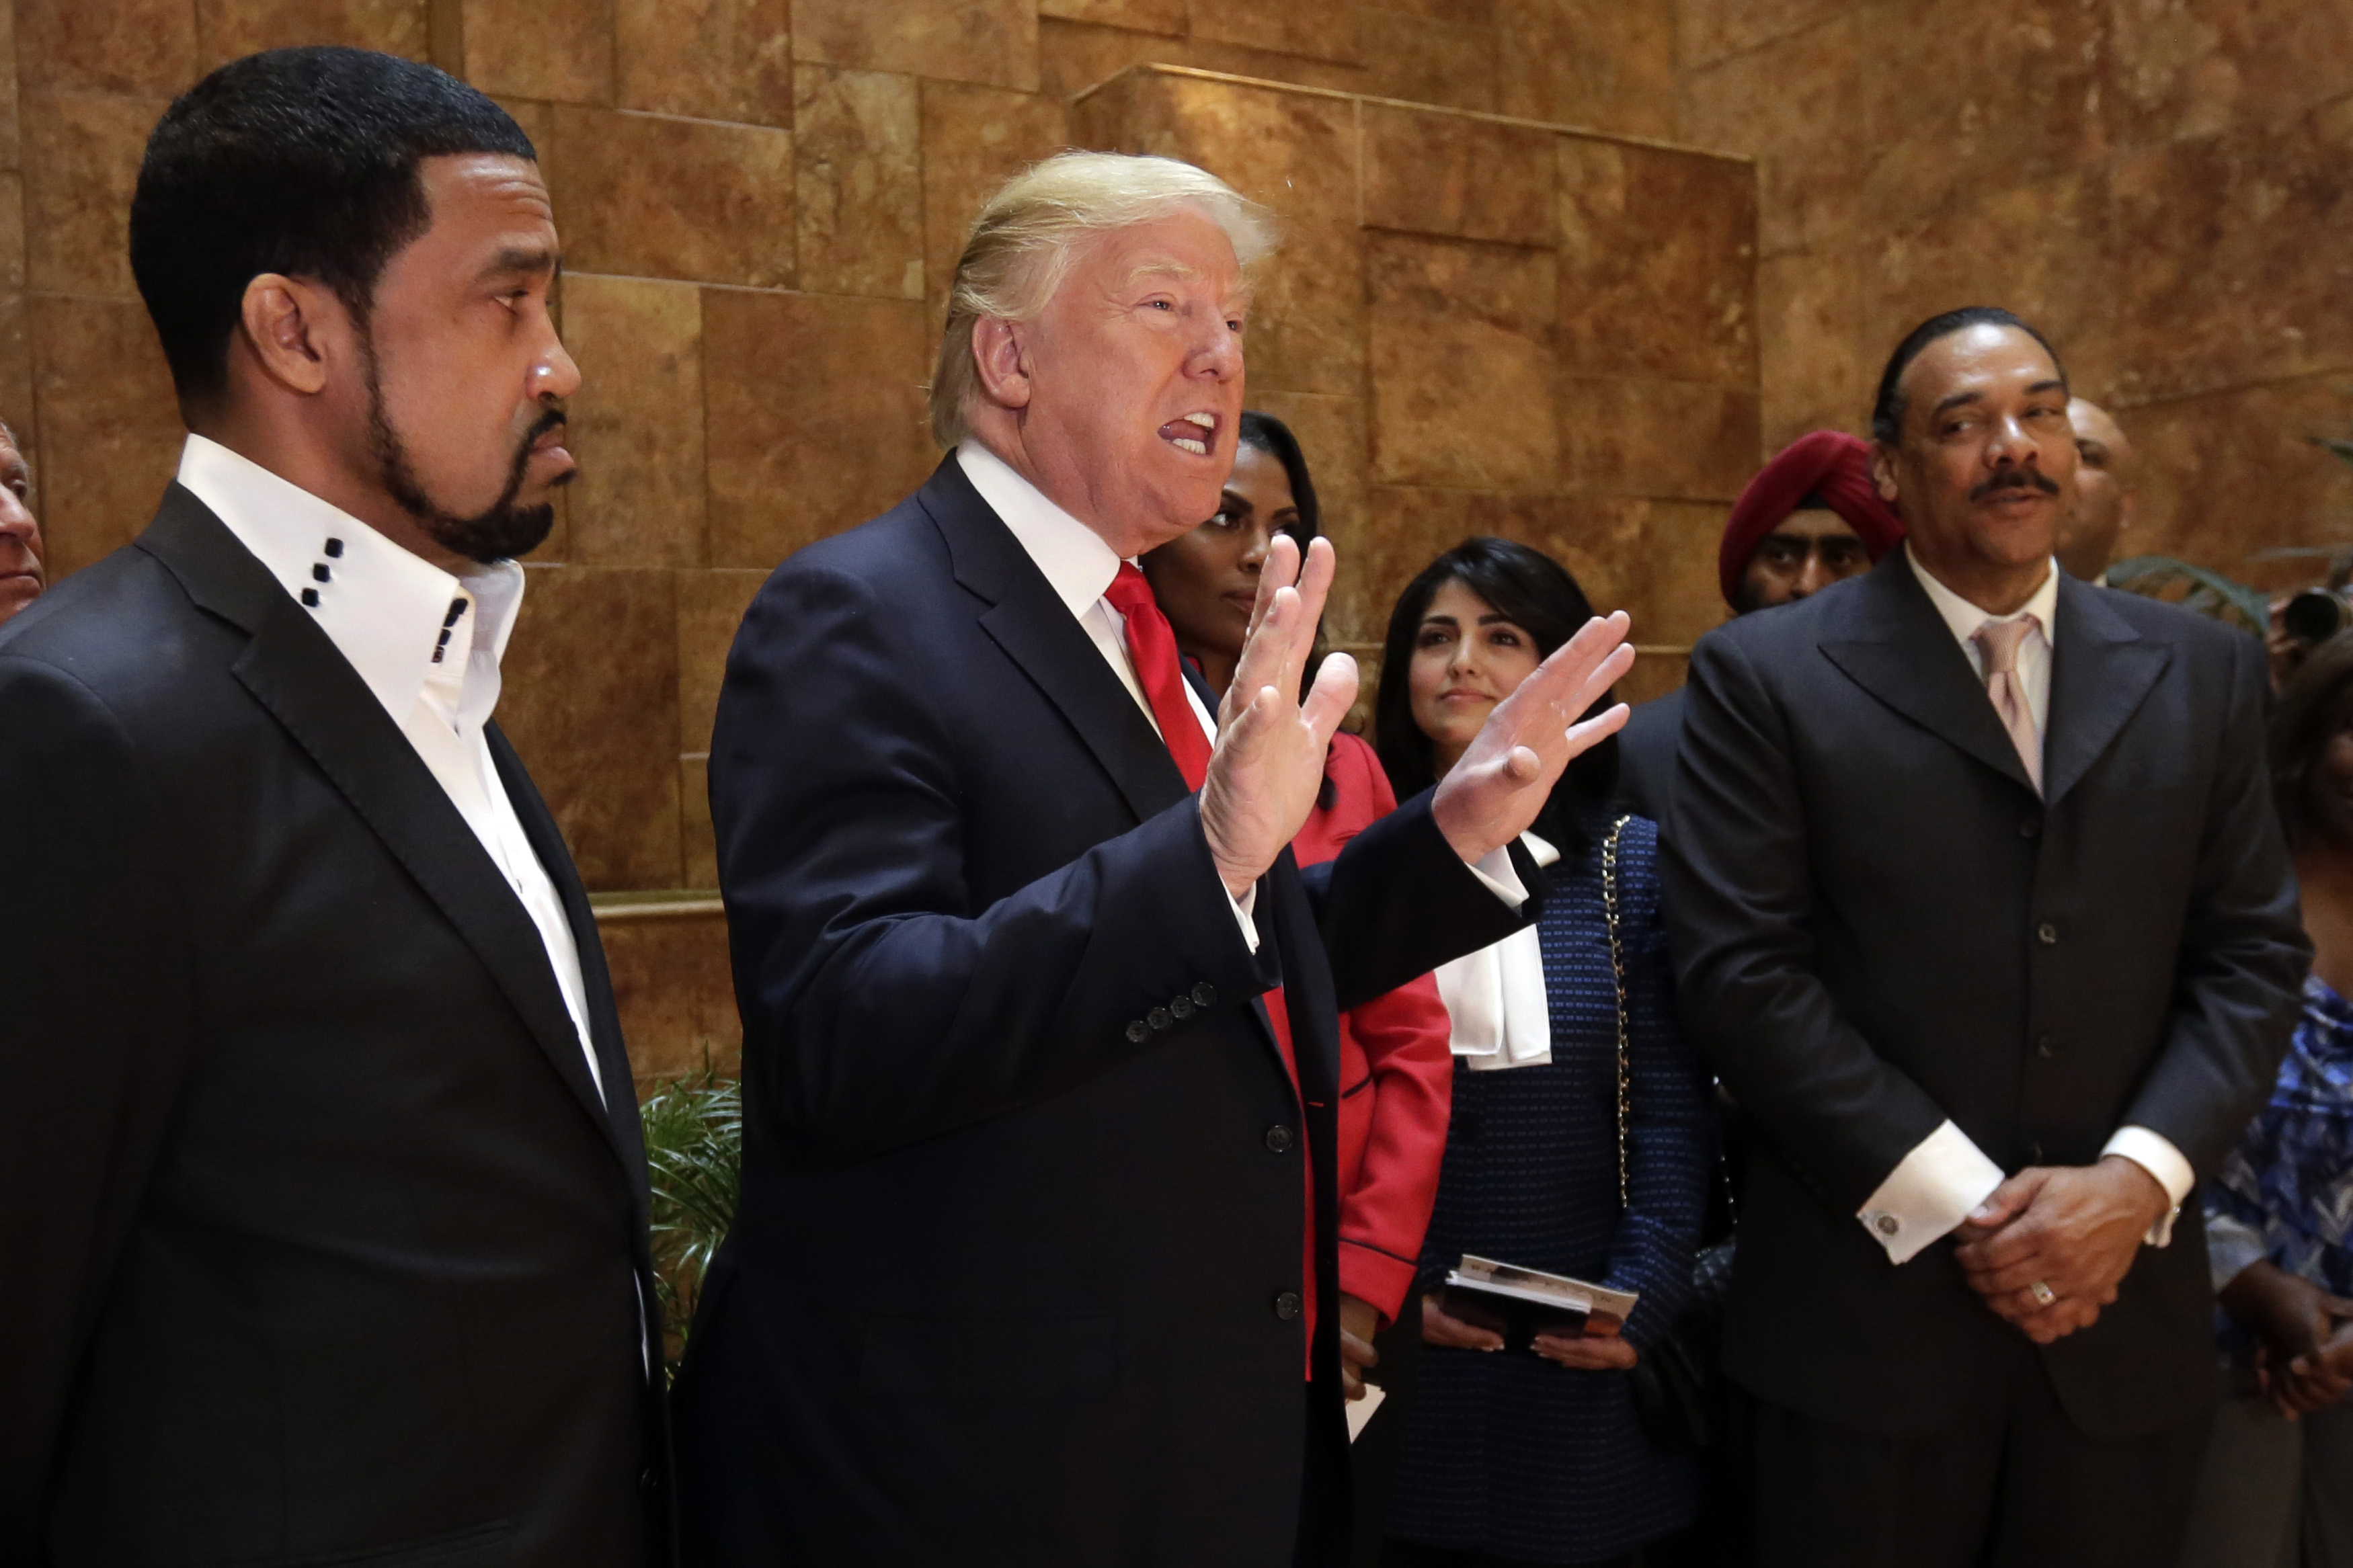 "In this April 18, 2016 file photo, Pastor Darrell Scott listens at left as Republican presidential candidate Donald Trump speaks in Trump Tower building in New York. Competing appearances earlier this month by Trump and Hillary Clinton highlight an oft-overlooked political reality: The ""religious vote"" is vast and complex, and it extends beyond generalizations about ""social conservatives"" who side with Republicans and black Protestant churches whose pastors and parishioners opt nearly unanimously for Democrats. 